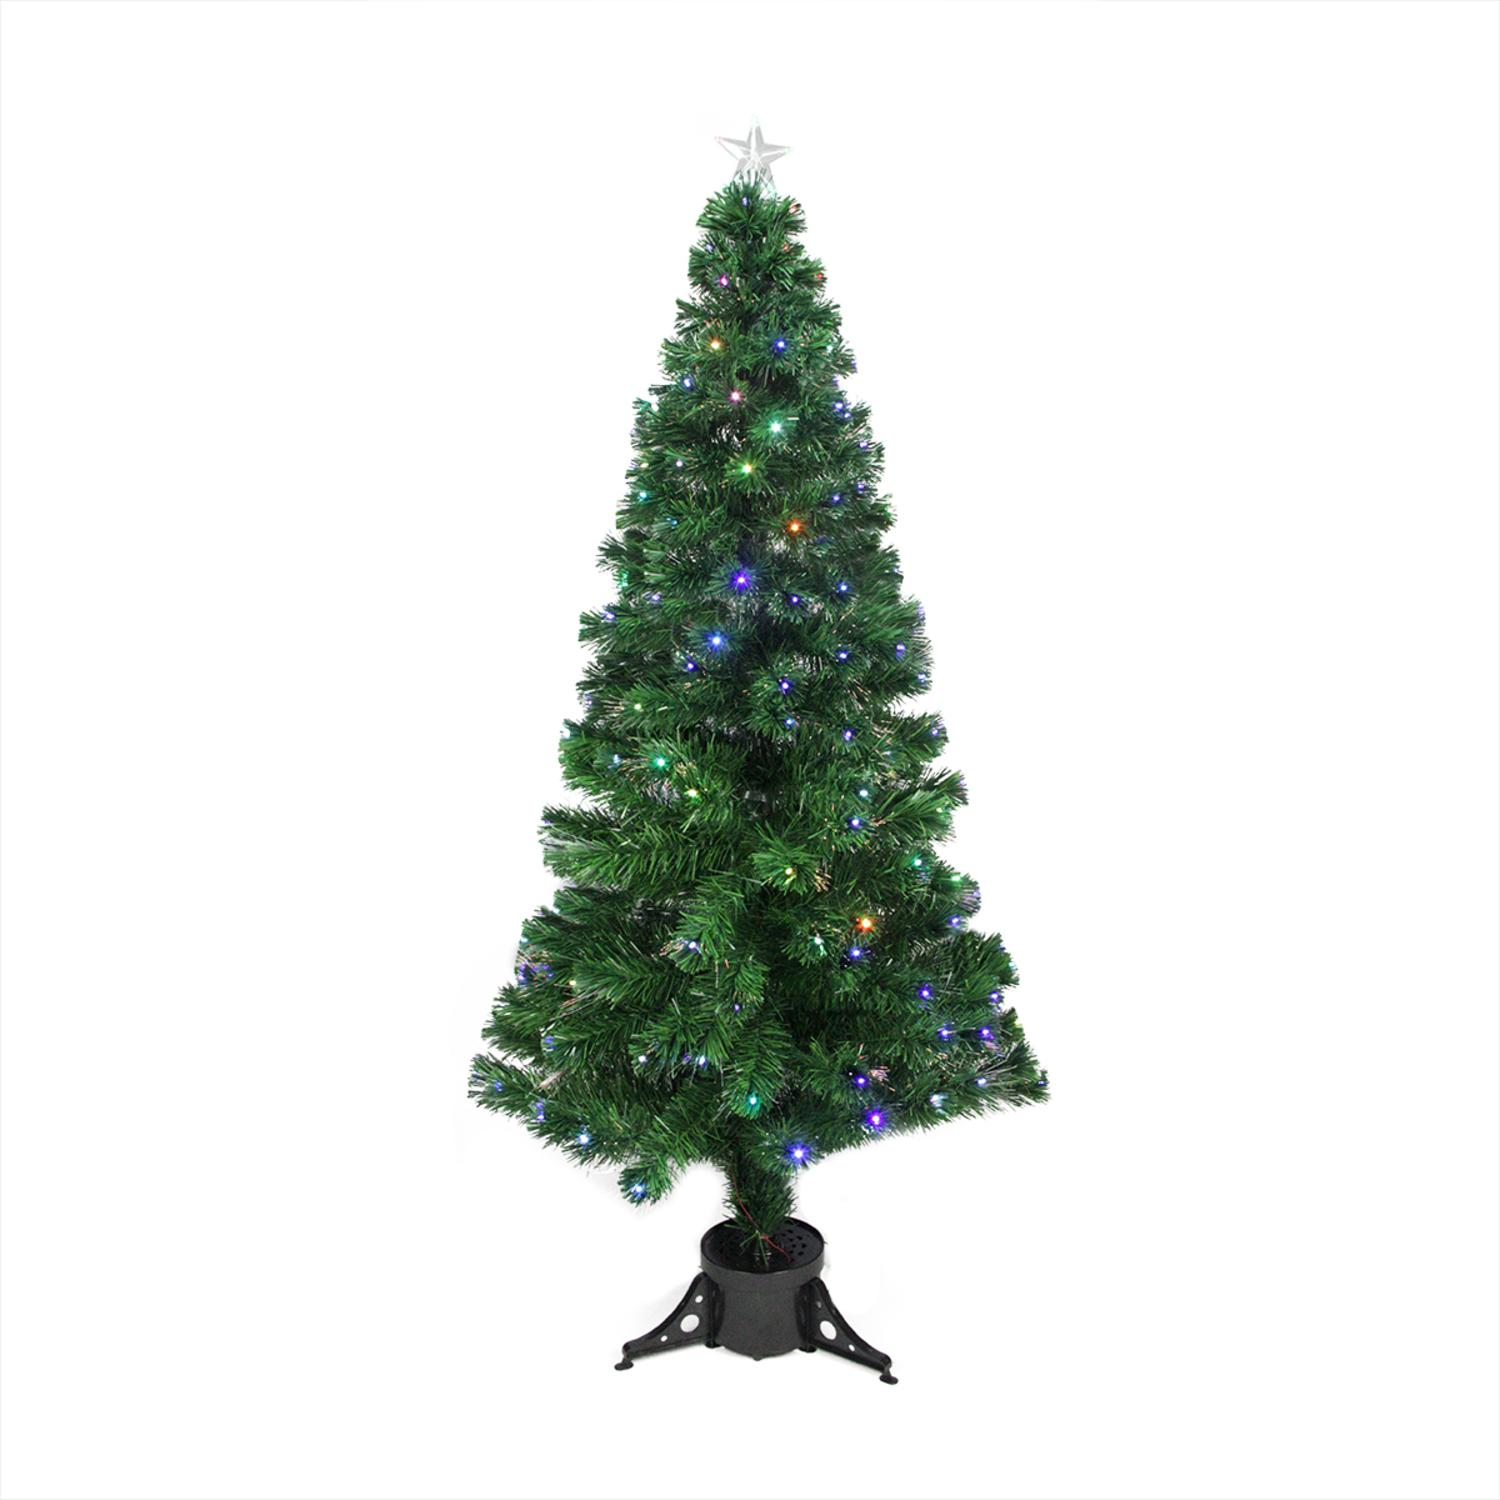 Northlight 6' Prelit Artificial Christmas Tree LED Color Changing Fiber Optic with Star Tree Topper